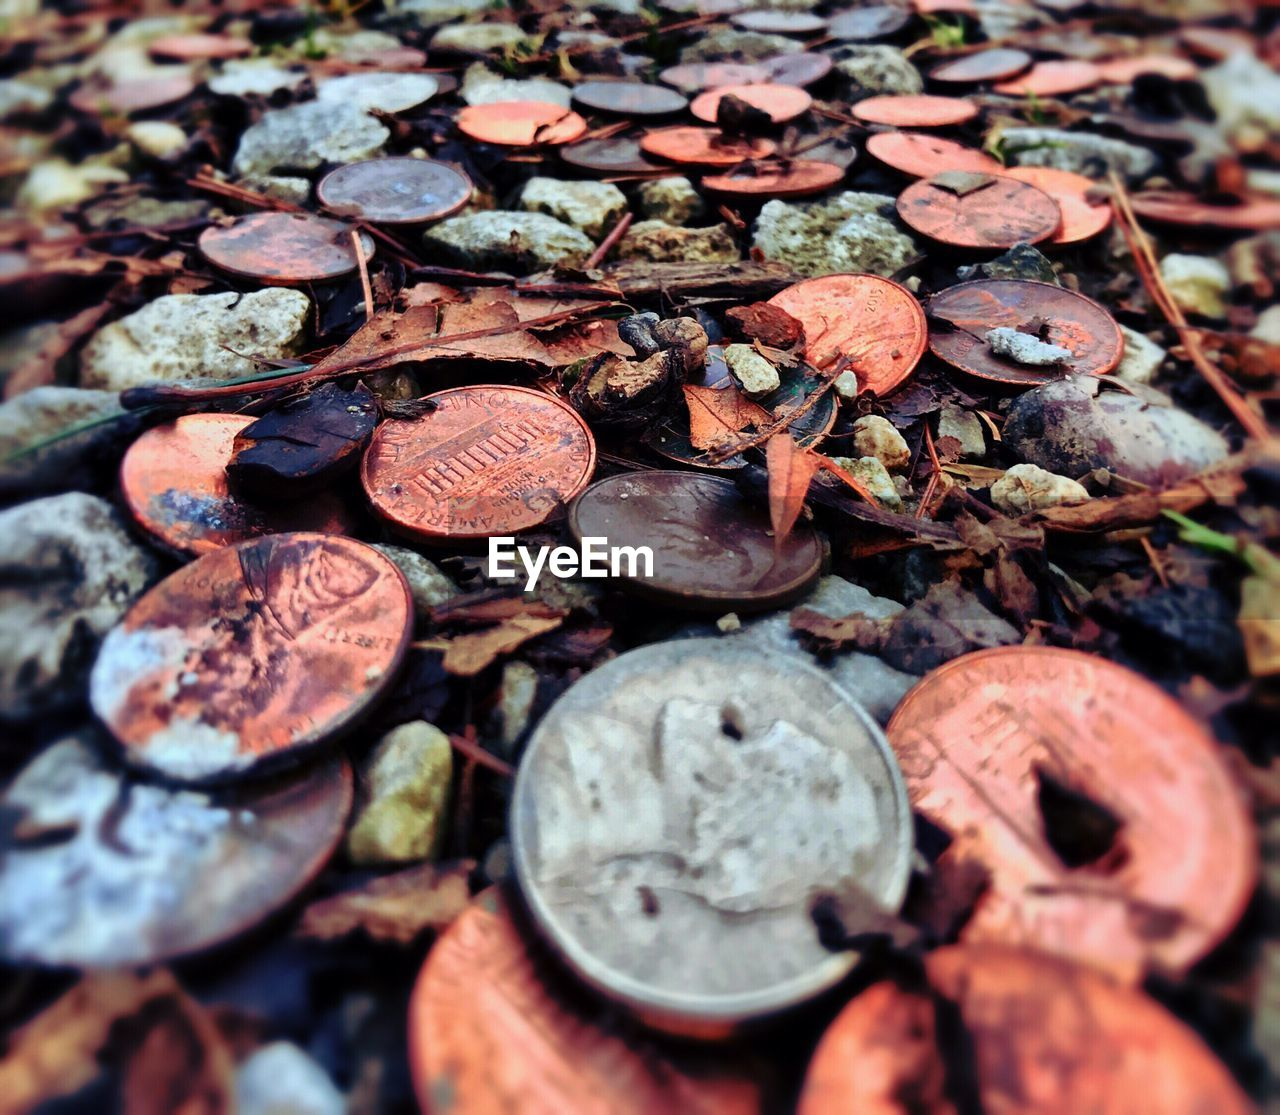 outdoors, no people, high angle view, day, close-up, coin, leaf, nature